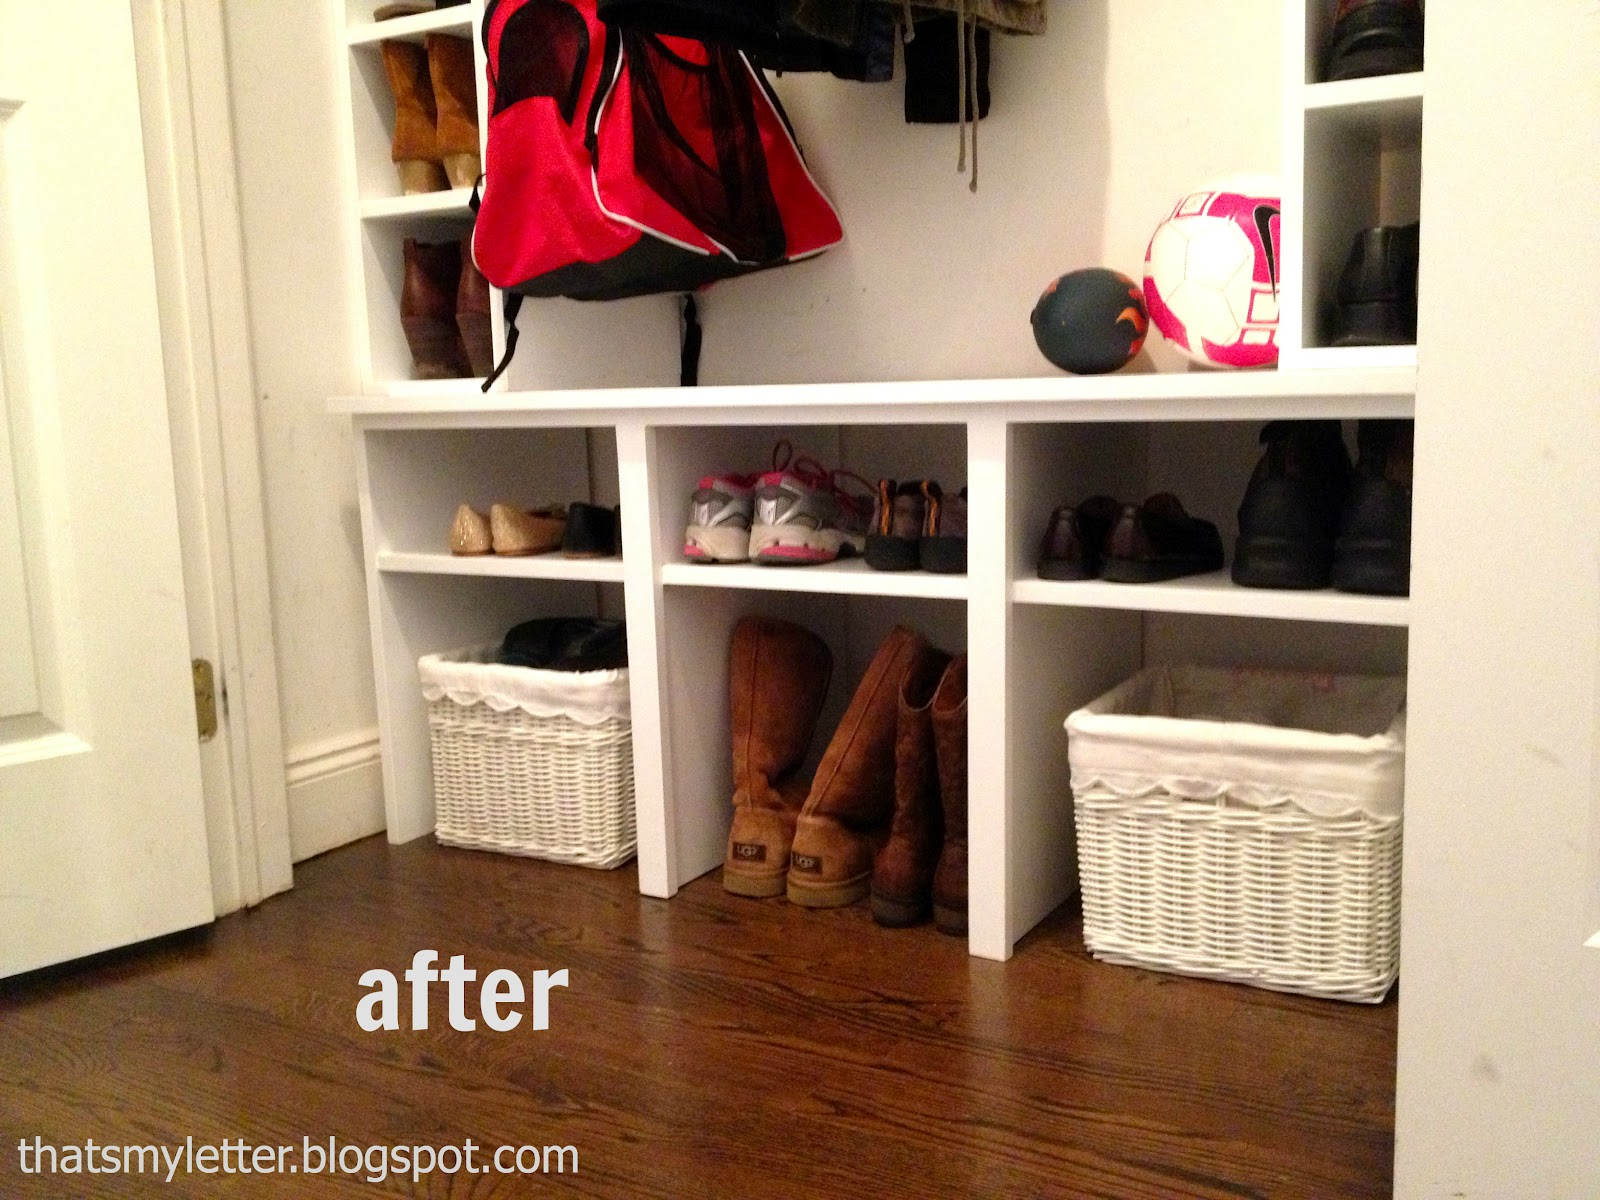 Overall a nice makeover that improved the functionality of the mudroom ...